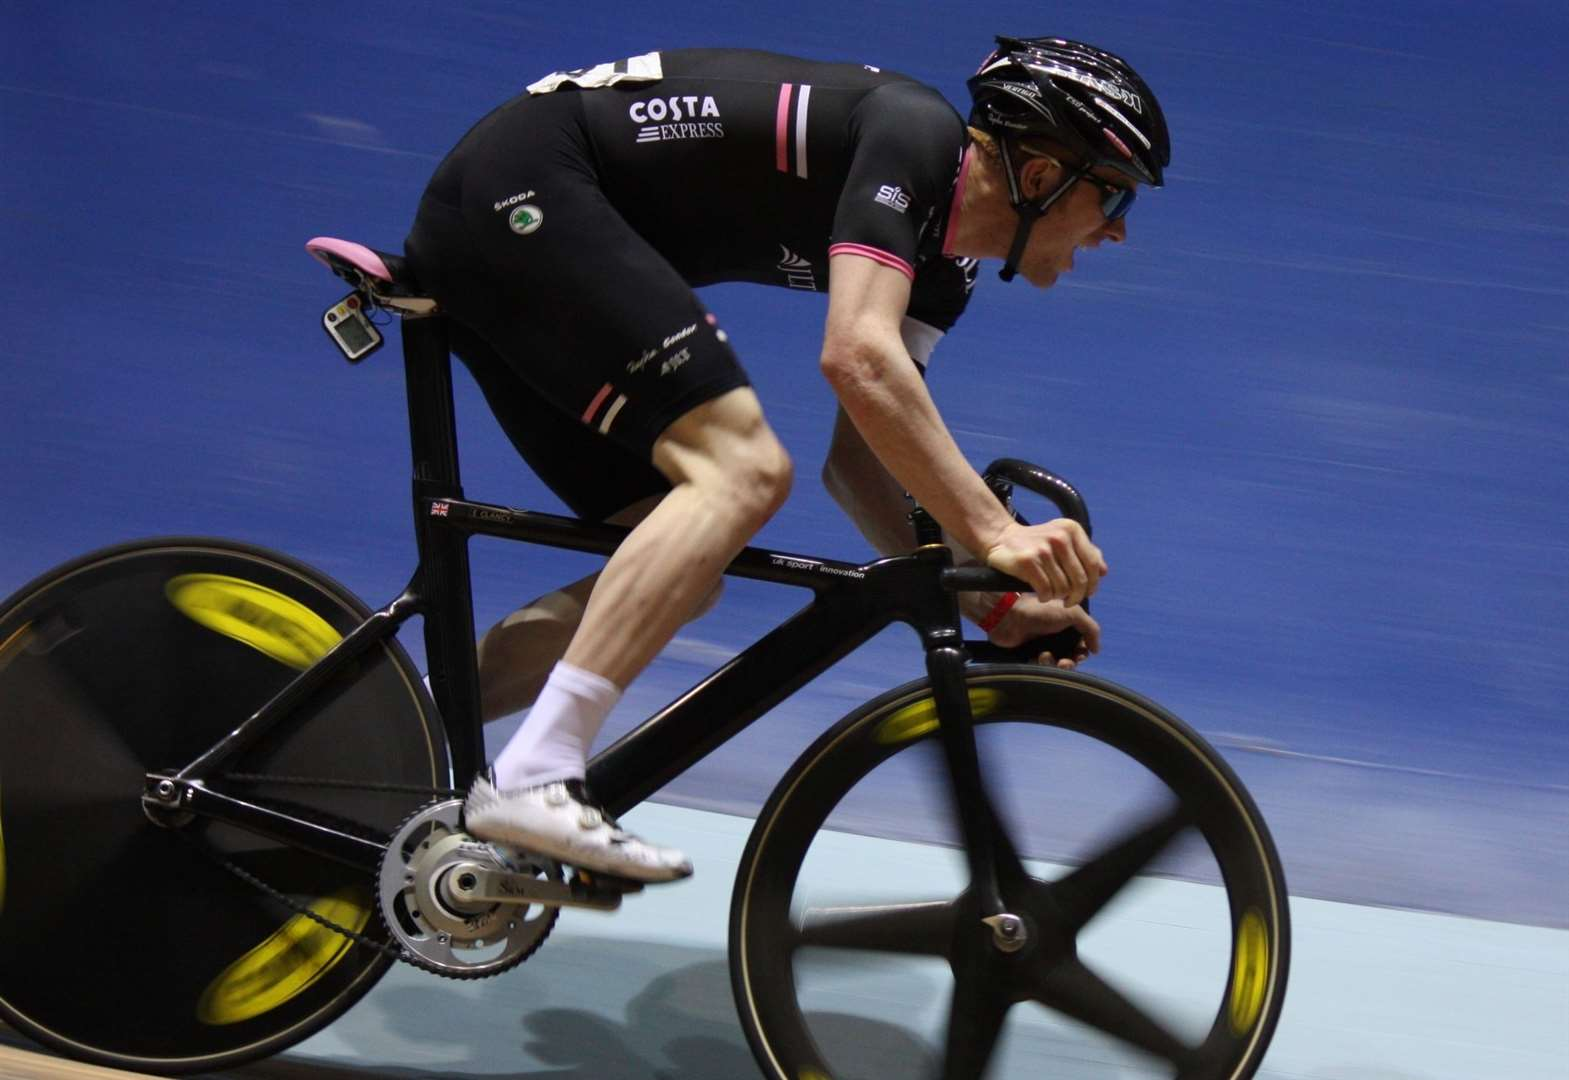 Olympic star to ride in cycle festival alongside hometown star